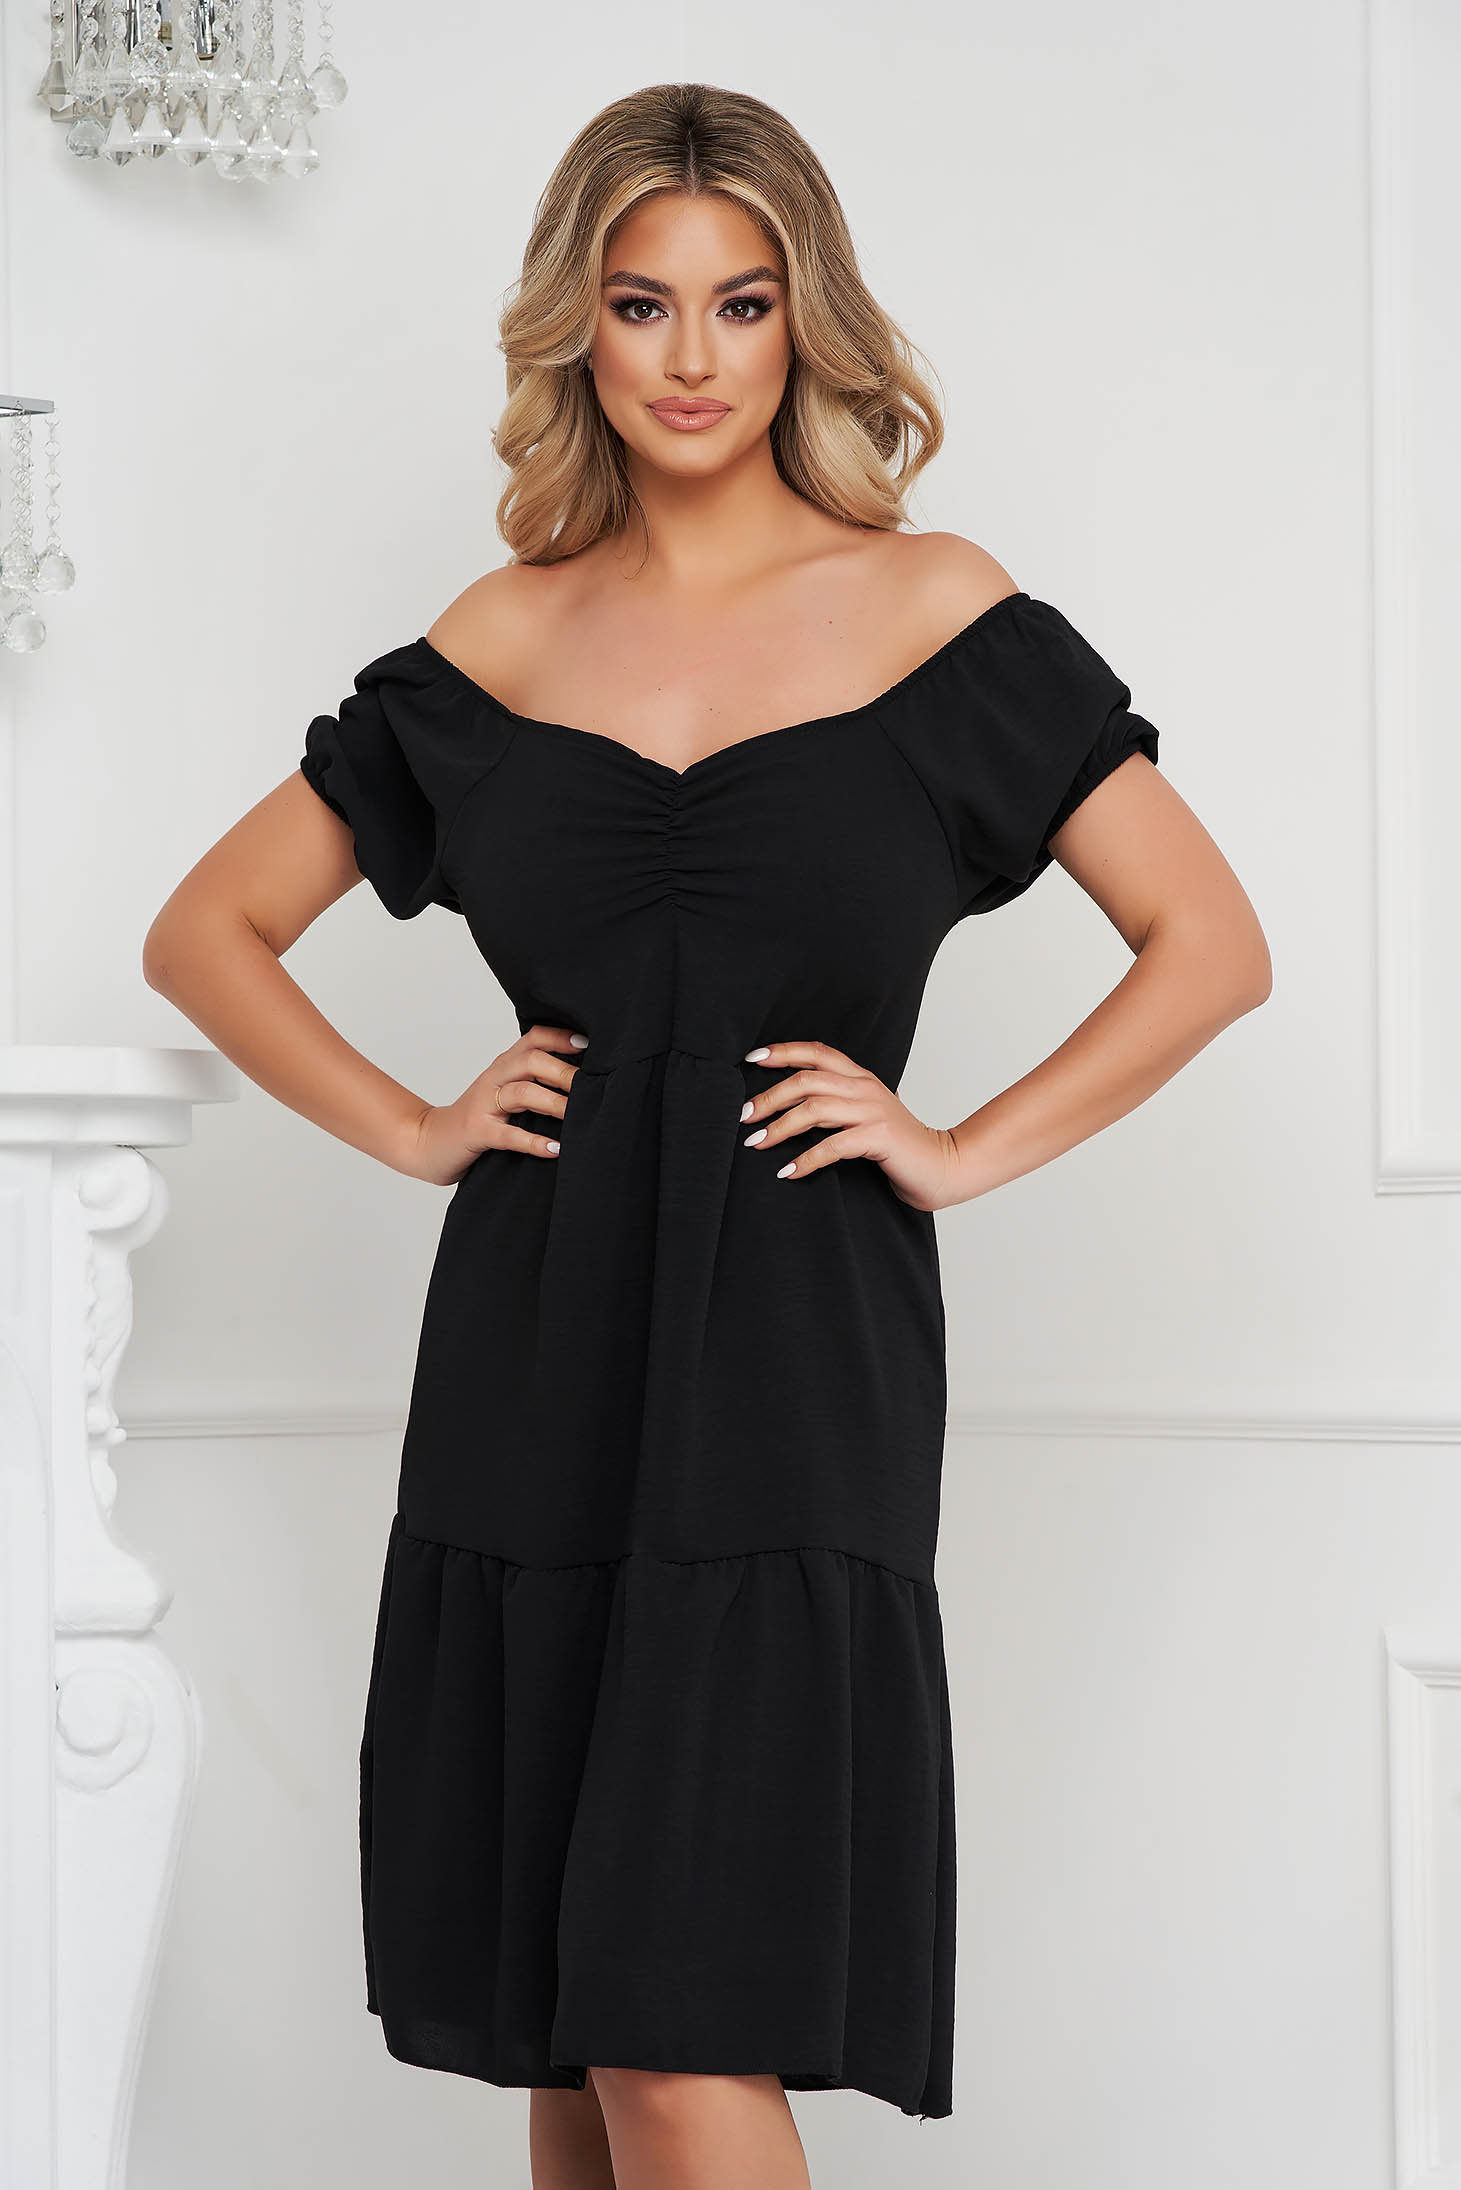 Black dress midi loose fit on the shoulders thin fabric